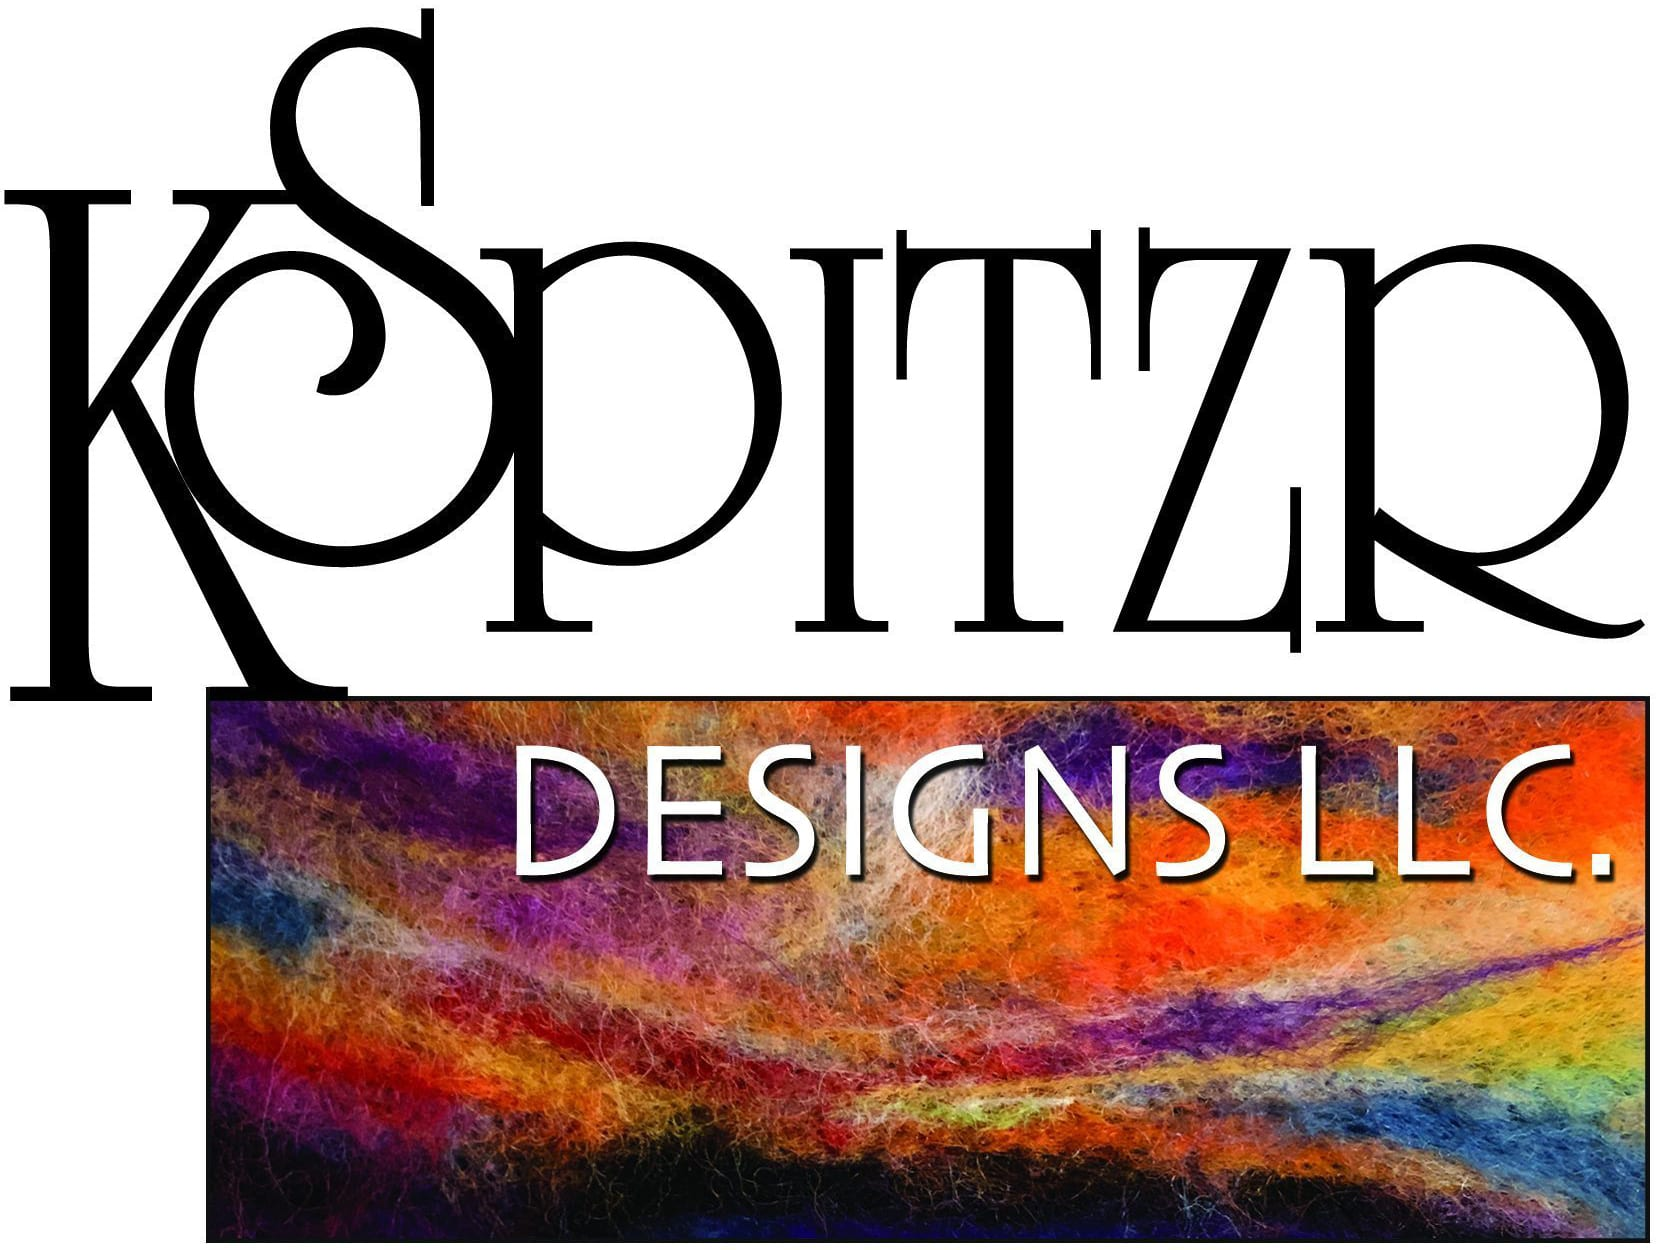 KSpitzr Designs LLC.